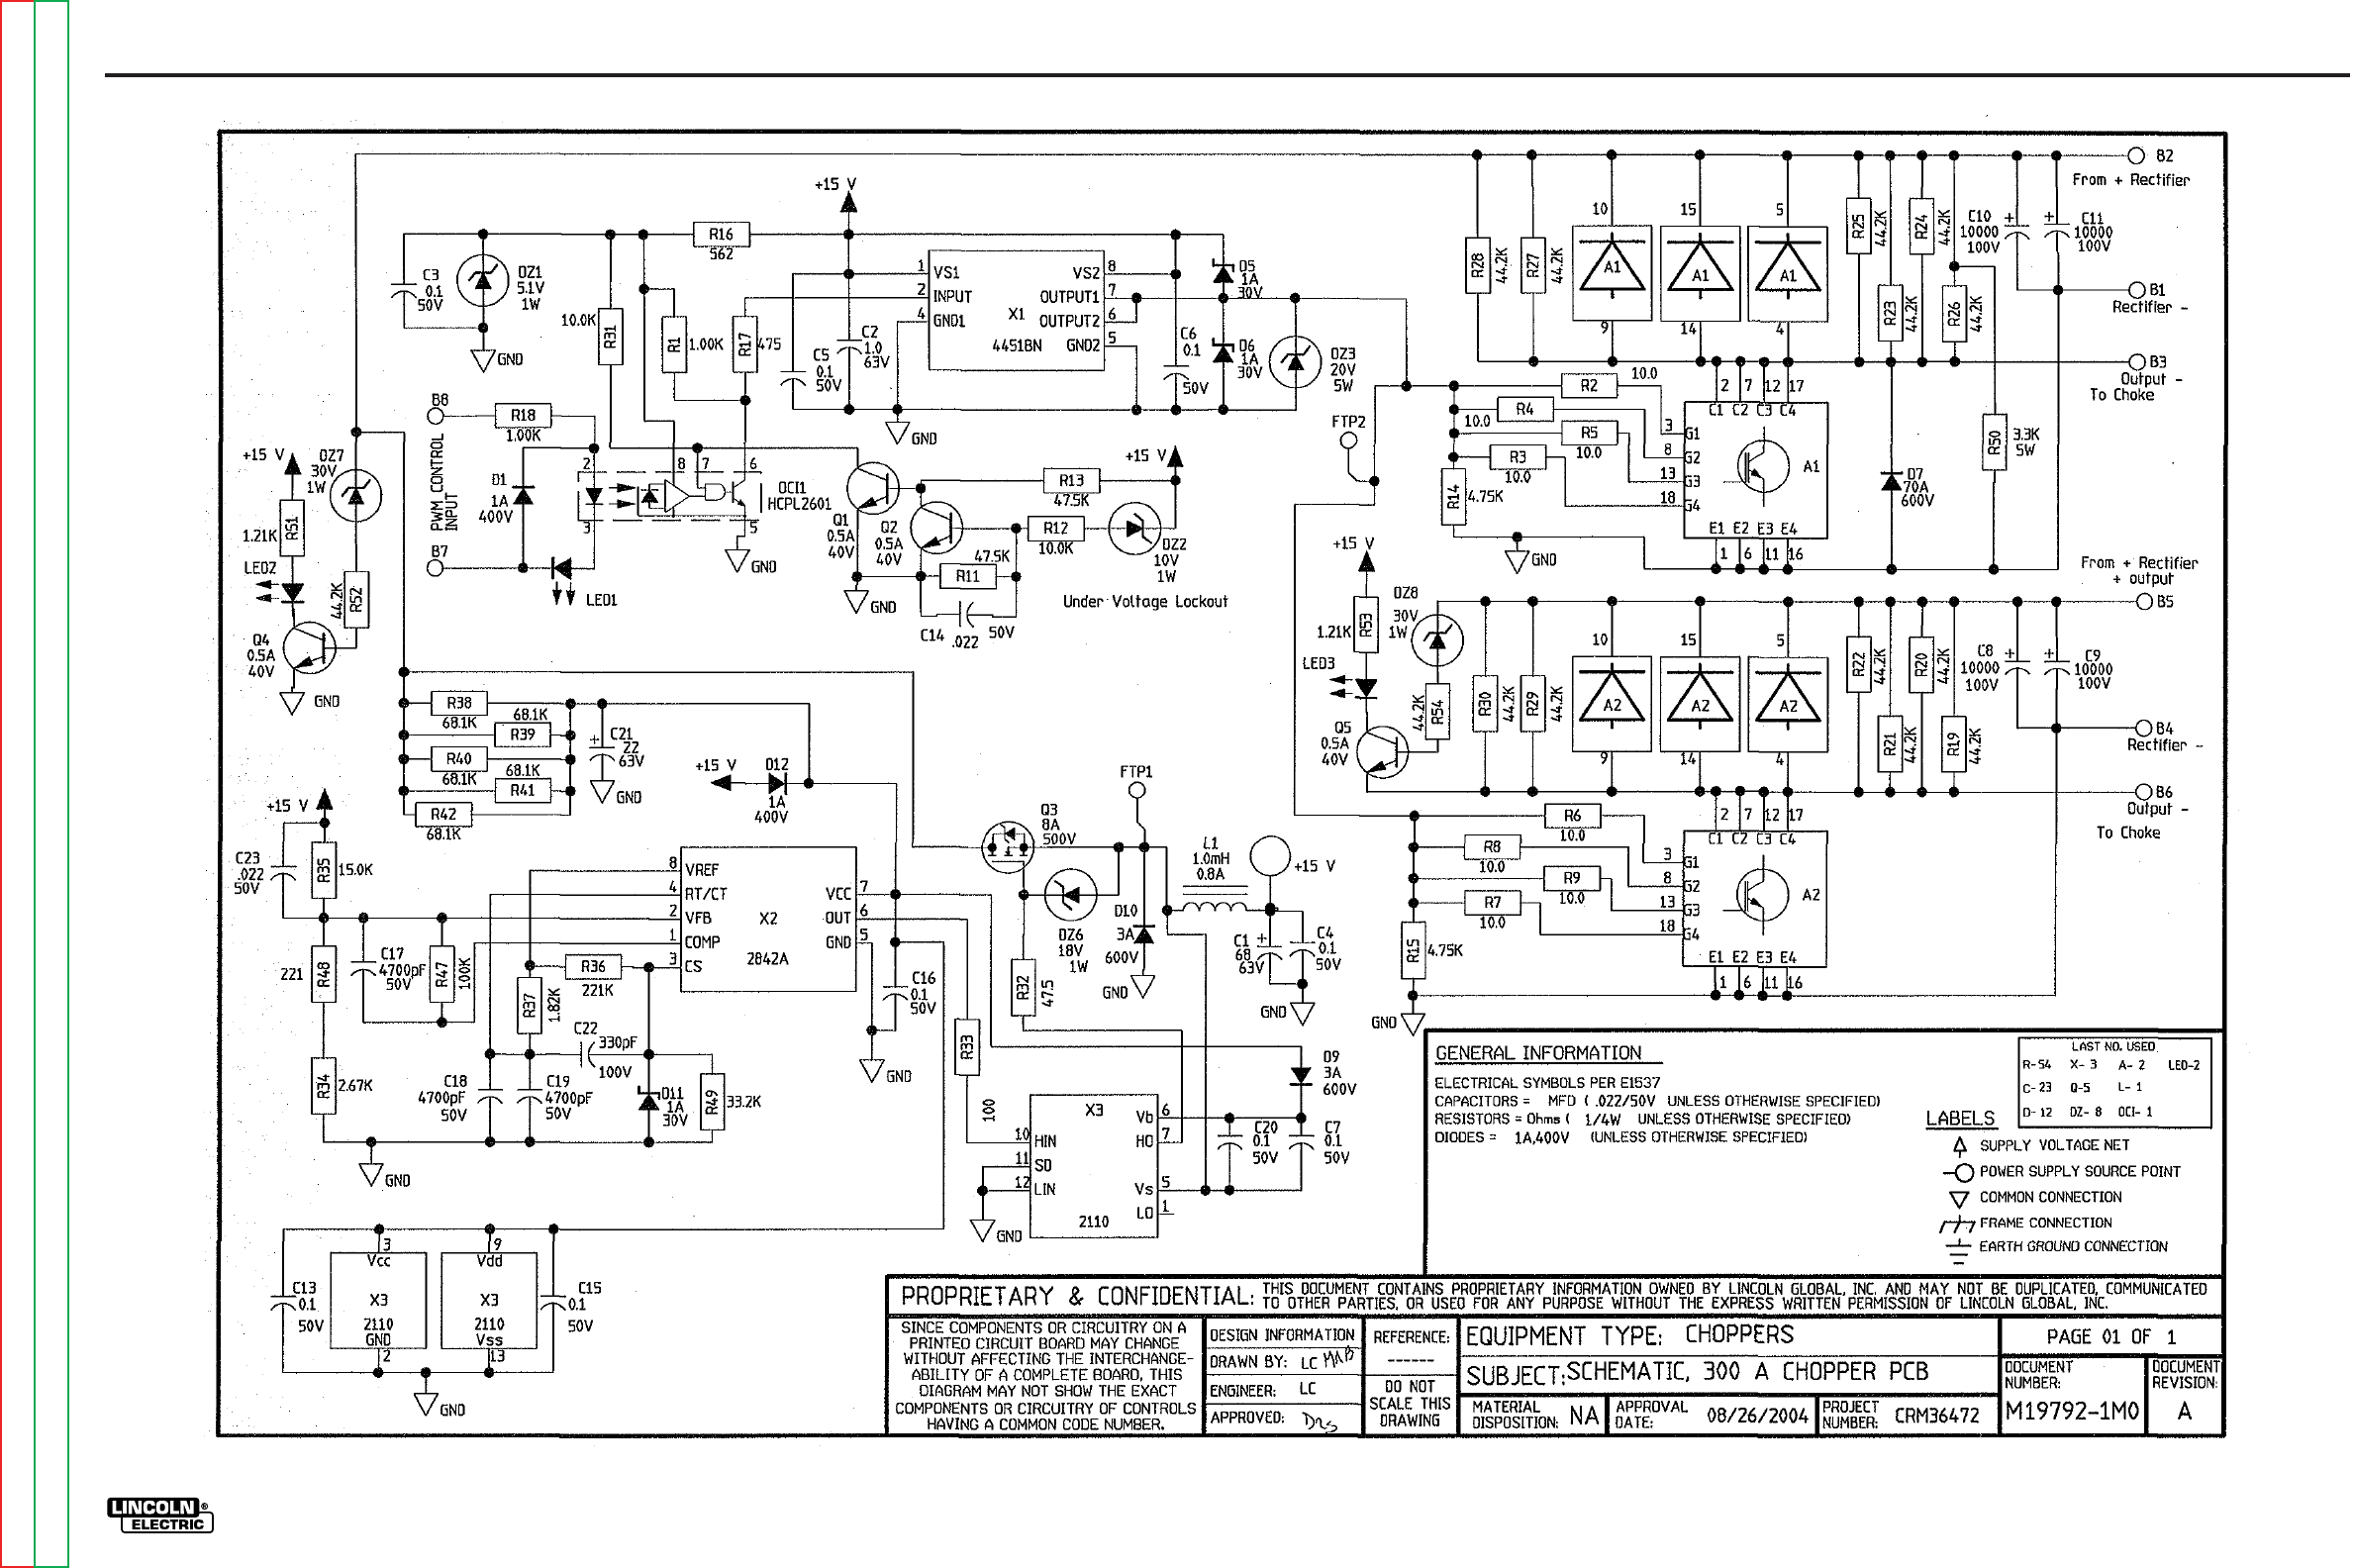 lincoln 225 wiring diagram pdf with Lincoln 300d Perkins Engine Wiring Diagram Wiring Diagrams on Welder Miller Bobcat 225 Wiring Diagram in addition Standby Generator Wiring Diagram likewise Century Welder Wiring Diagrams For A also Hobart Welder Wiring Diagram likewise Plasma Cutter Wiring Diagram.